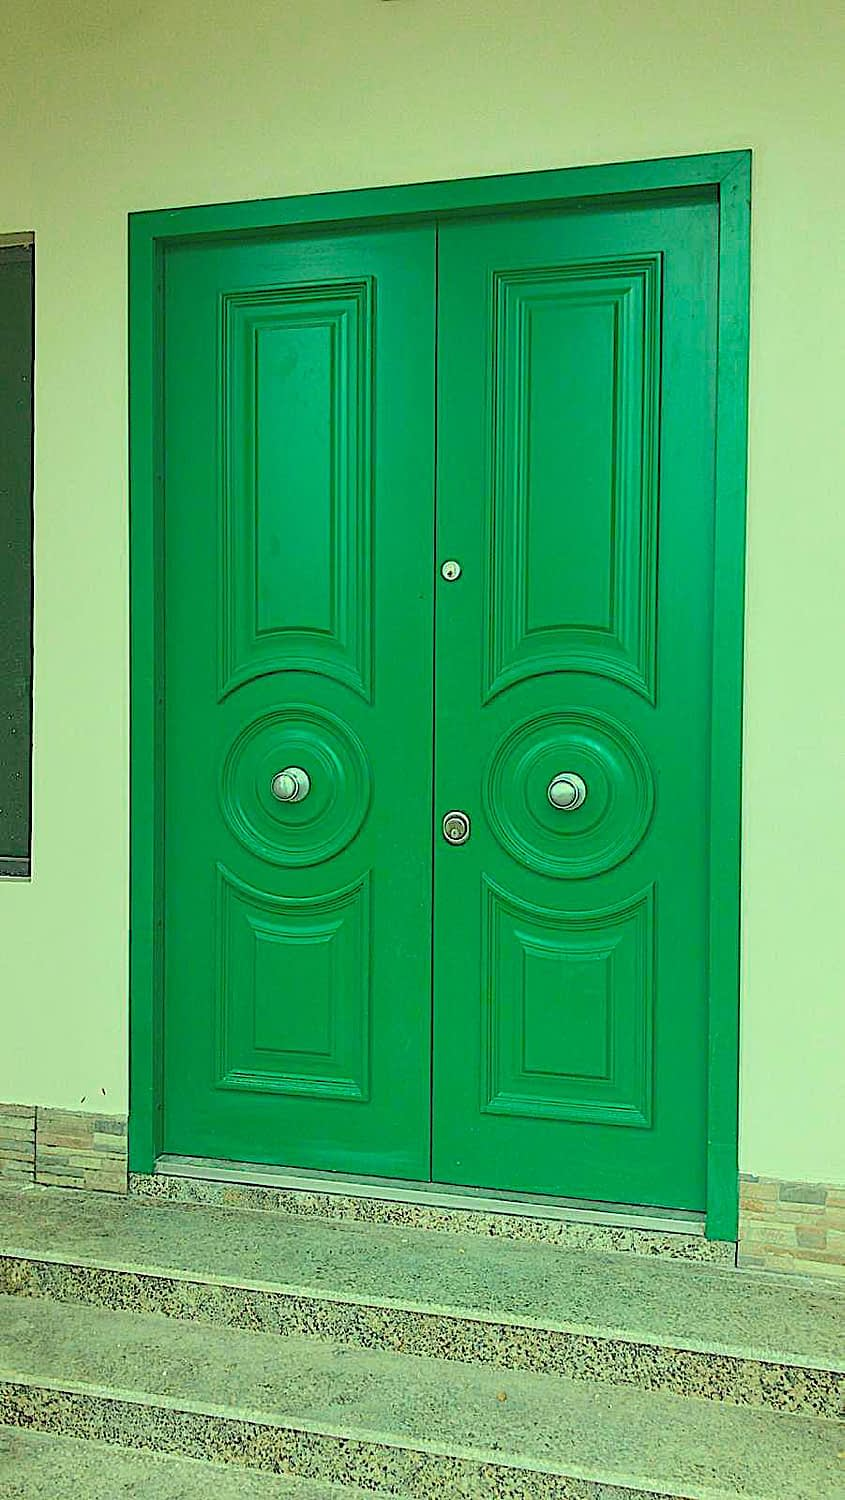 green security doors (old school)